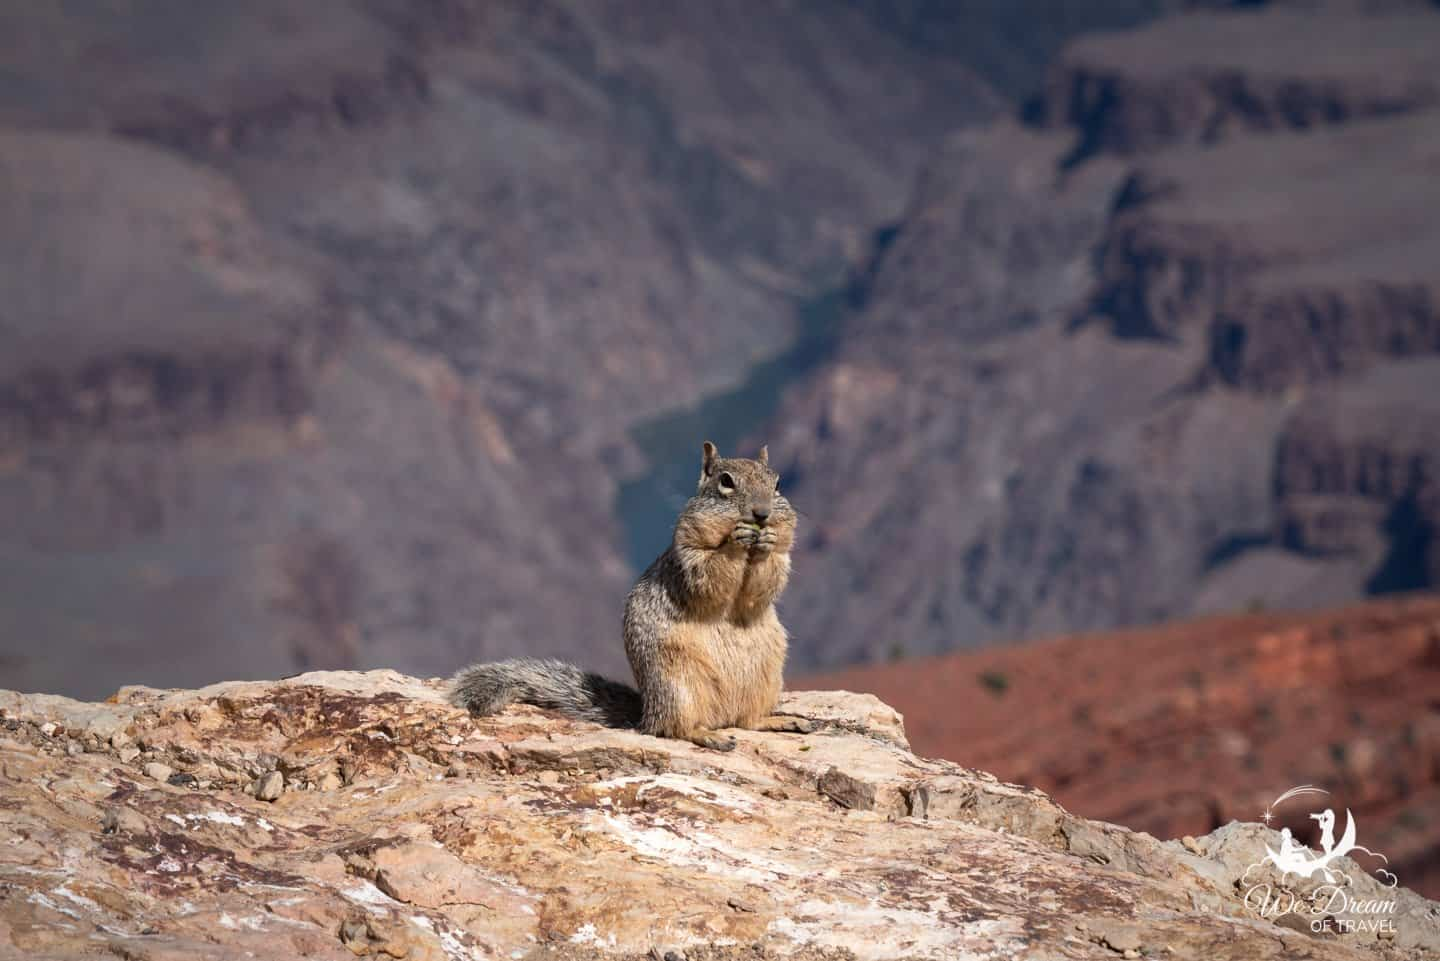 An adorable squirrel in front of the Colorado River from the Grand Canyon South Rim.